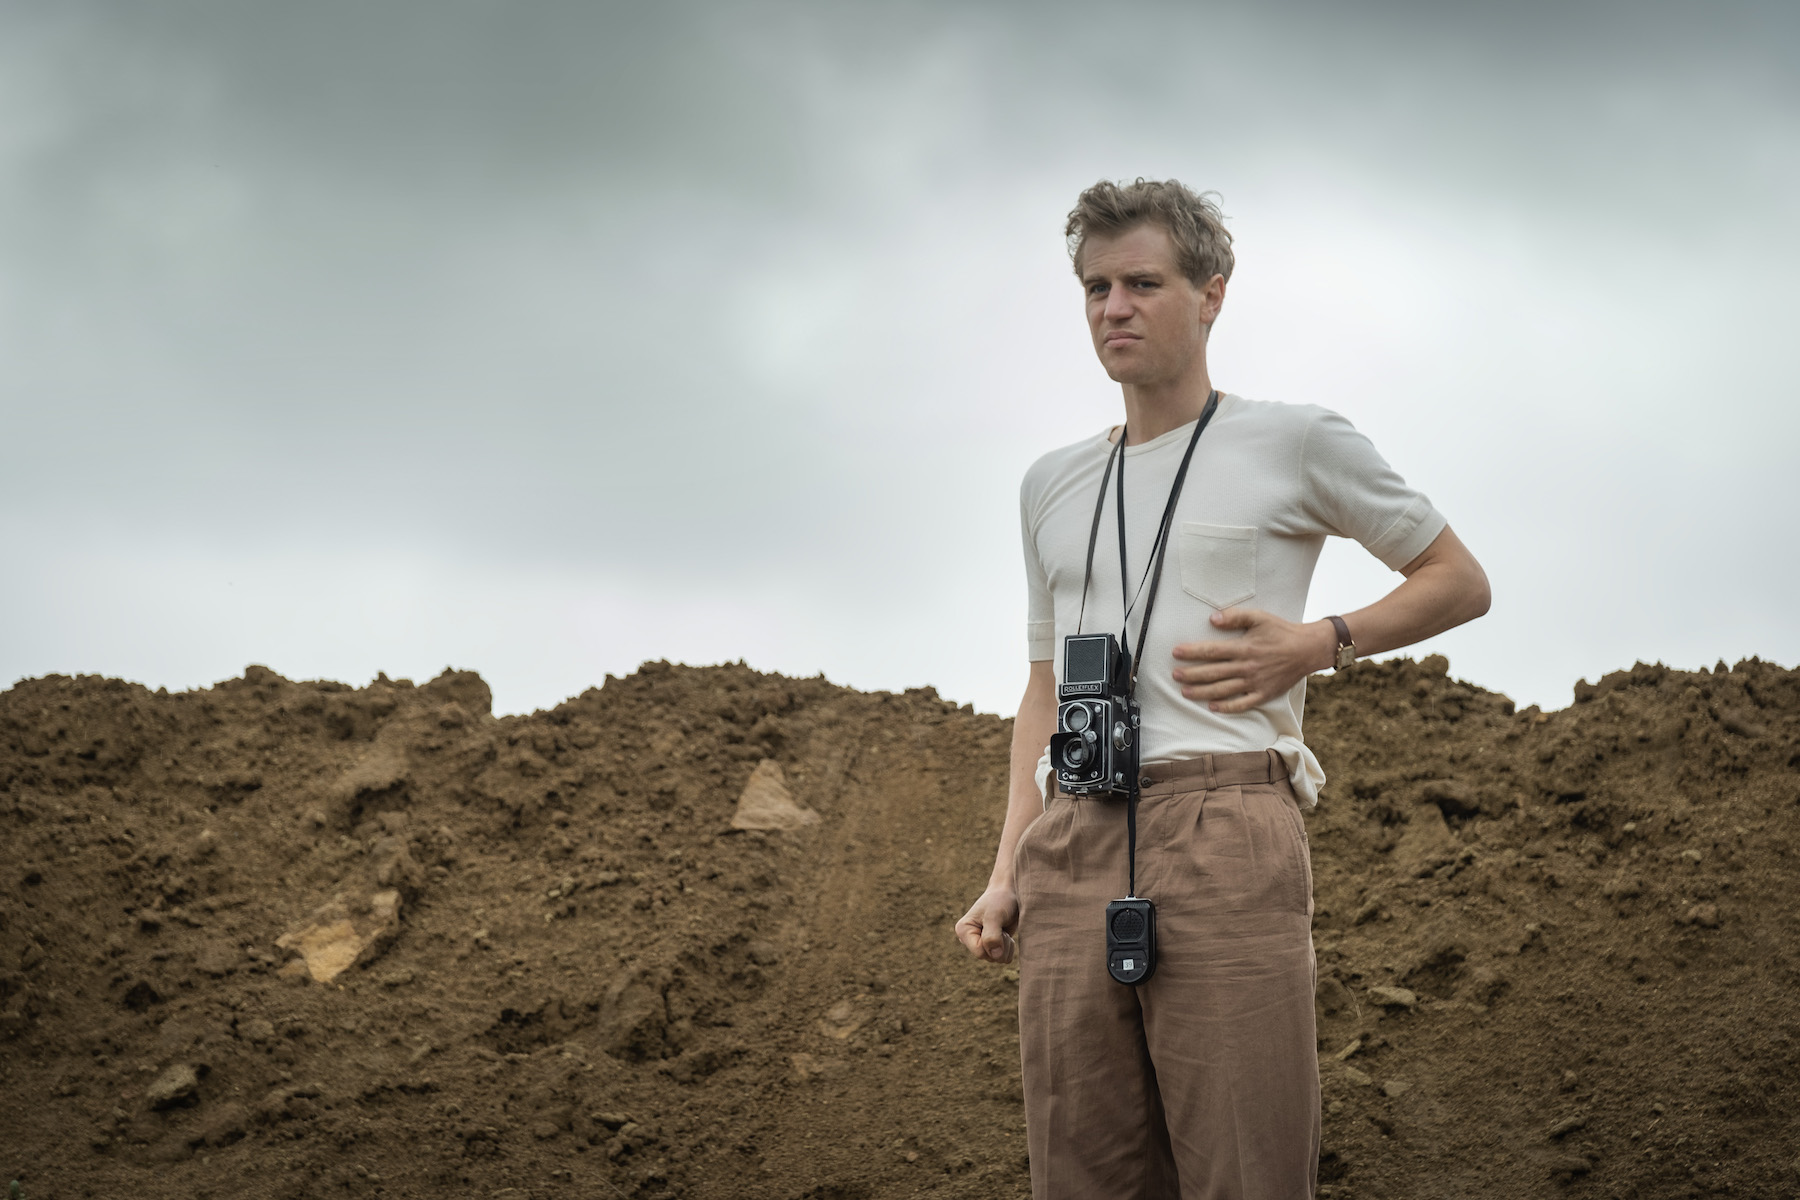 THE DIG. JOHNNY FLYNN as RORY LOMAX, in THE DIG: Cr. LARRY HORRICKS/NETFLIX © 2021